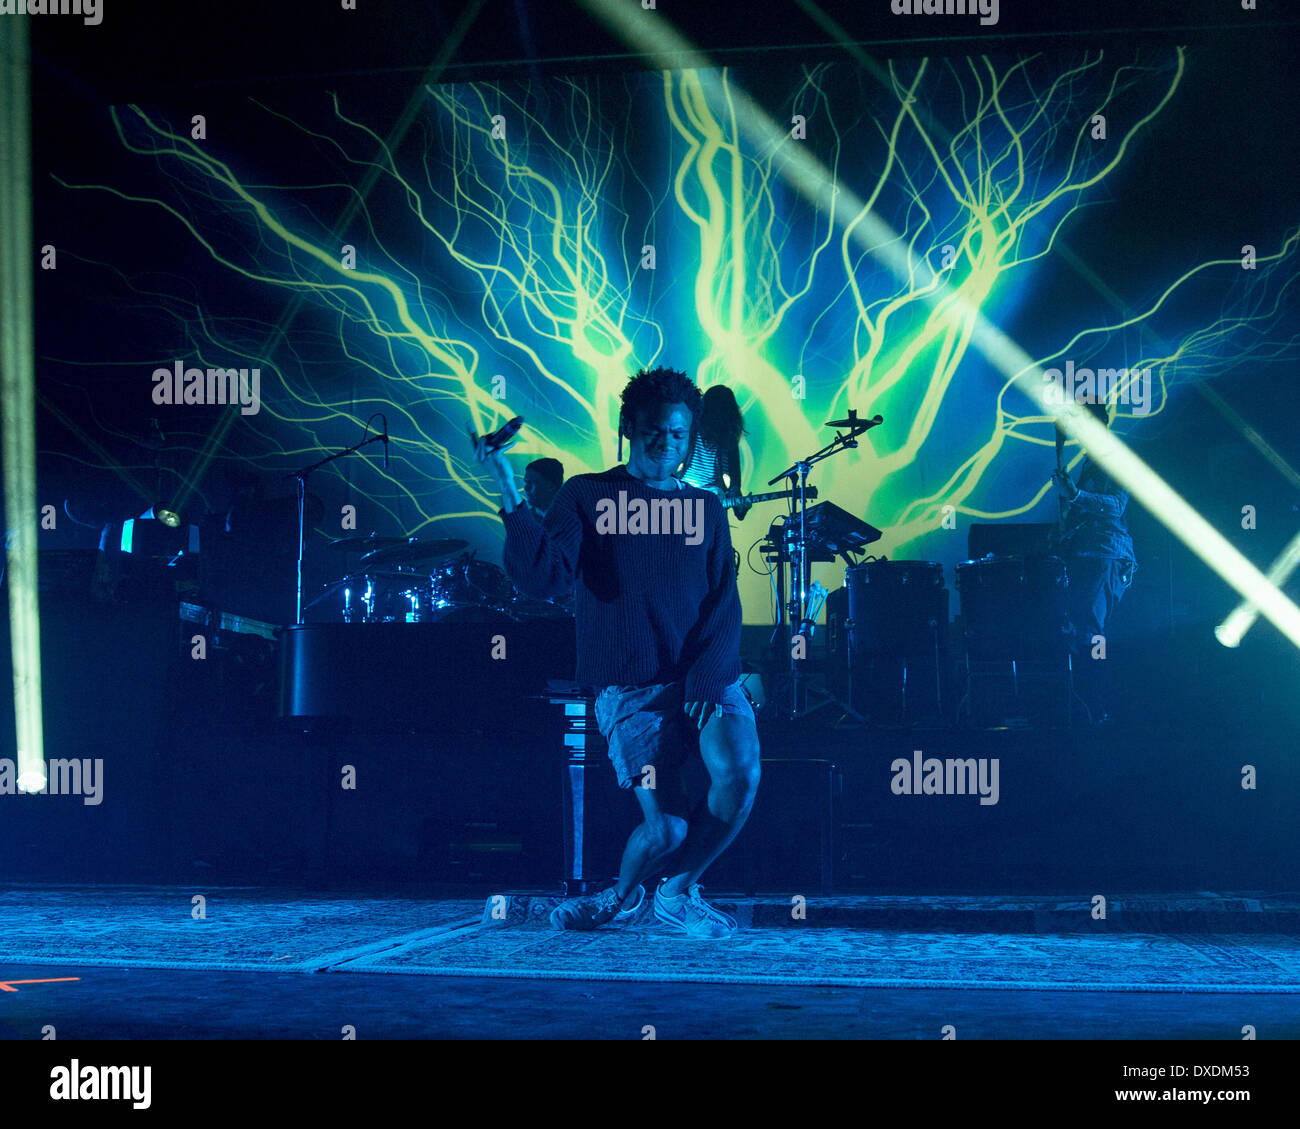 March 21, 2014 - Milwaukee, Wisconsin, U.S - Rapper CHILDISH GAMBINO (aka DONALD GLOVER) performs live at The Rave's Eagles Ballroom in Milwaukee, Wisconsin (Credit Image: © Daniel DeSlover/ZUMAPRESS.com) - Stock Image